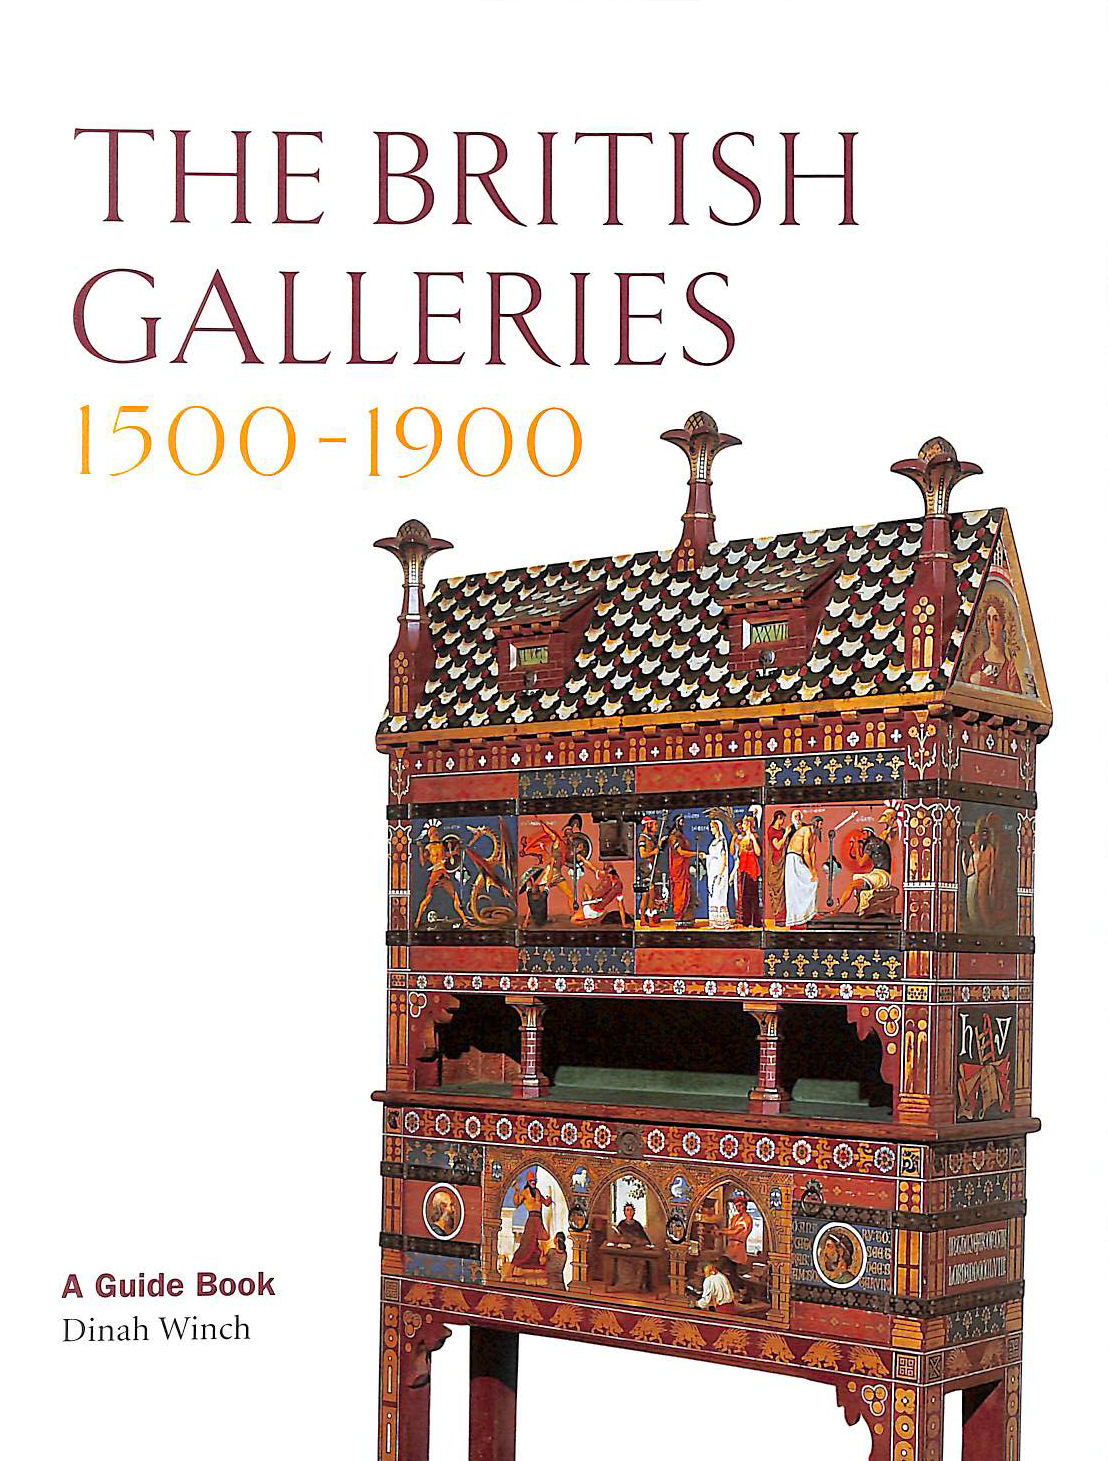 Image for The British Galleries 1500-1900. A Guide Book. (Victoria & Albert Museum).